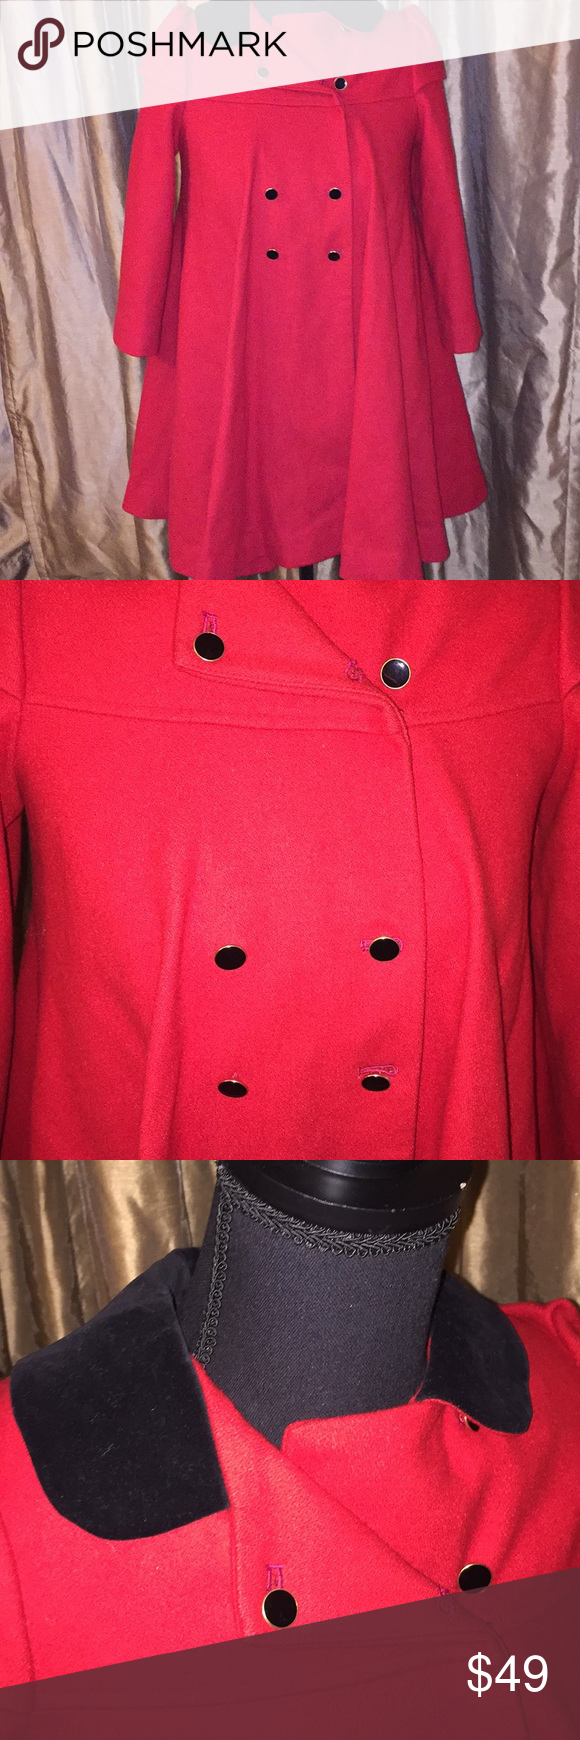 b6a2a79d492 Young gallery girls 6x wool pea coat Young gallery Size 6x Gorgeous girls  red wool pea coat Excellent condition Very stunning on young gallery Jackets  ...